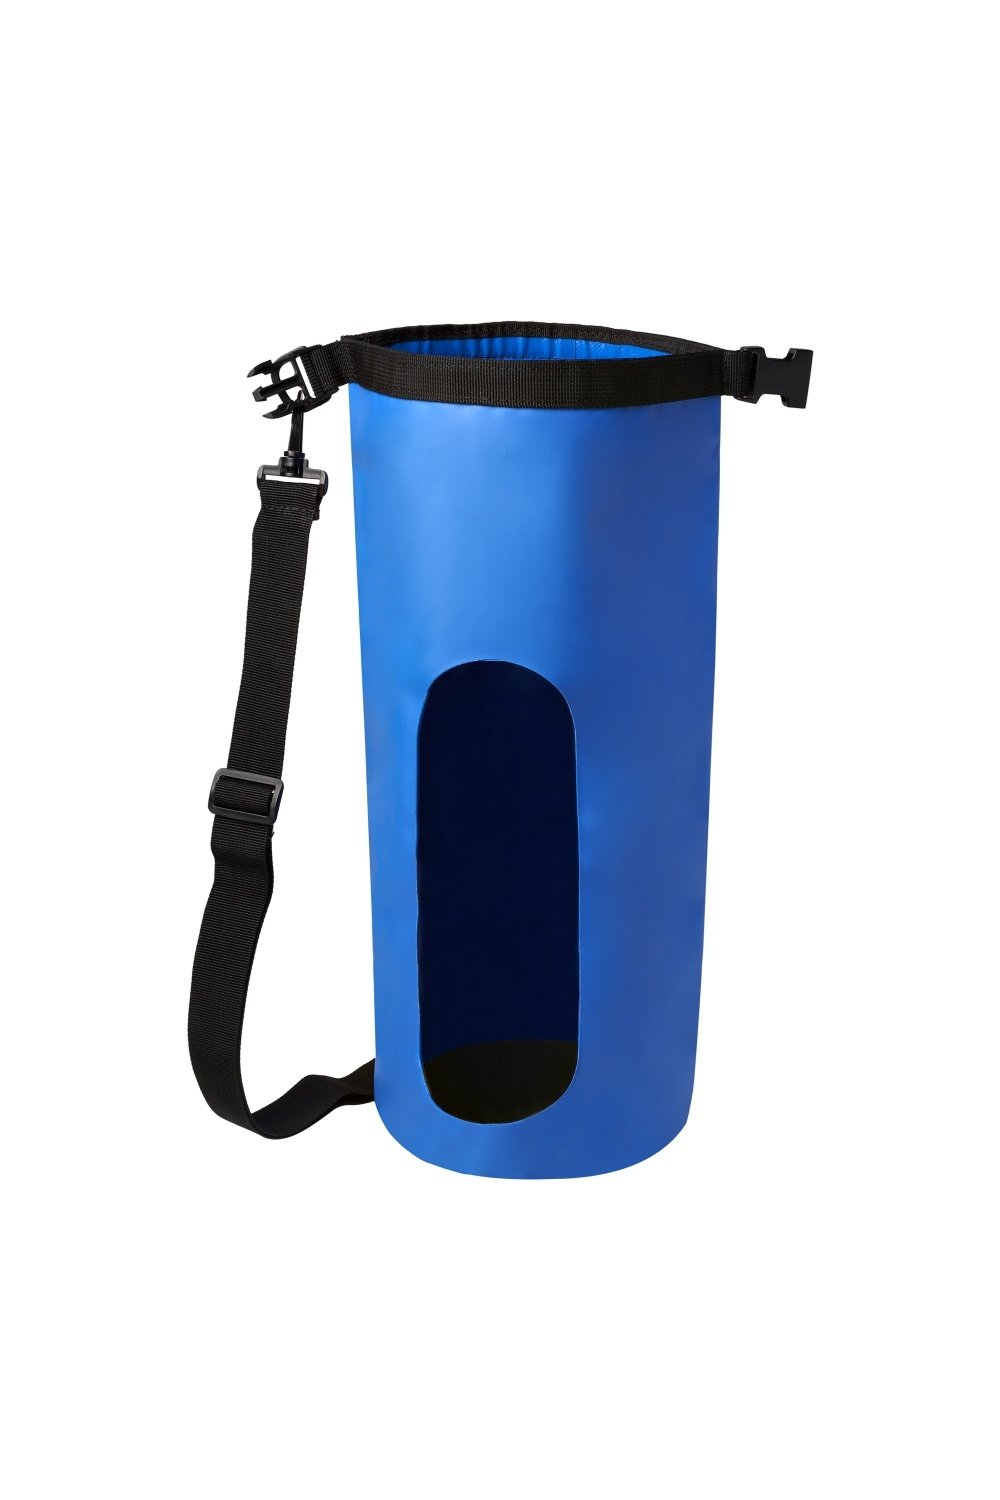 nod Waterproof 10 Liter Blue Dry Bag With Adjustable Strap and Snap Buckle and Heavy Duty Vinyl